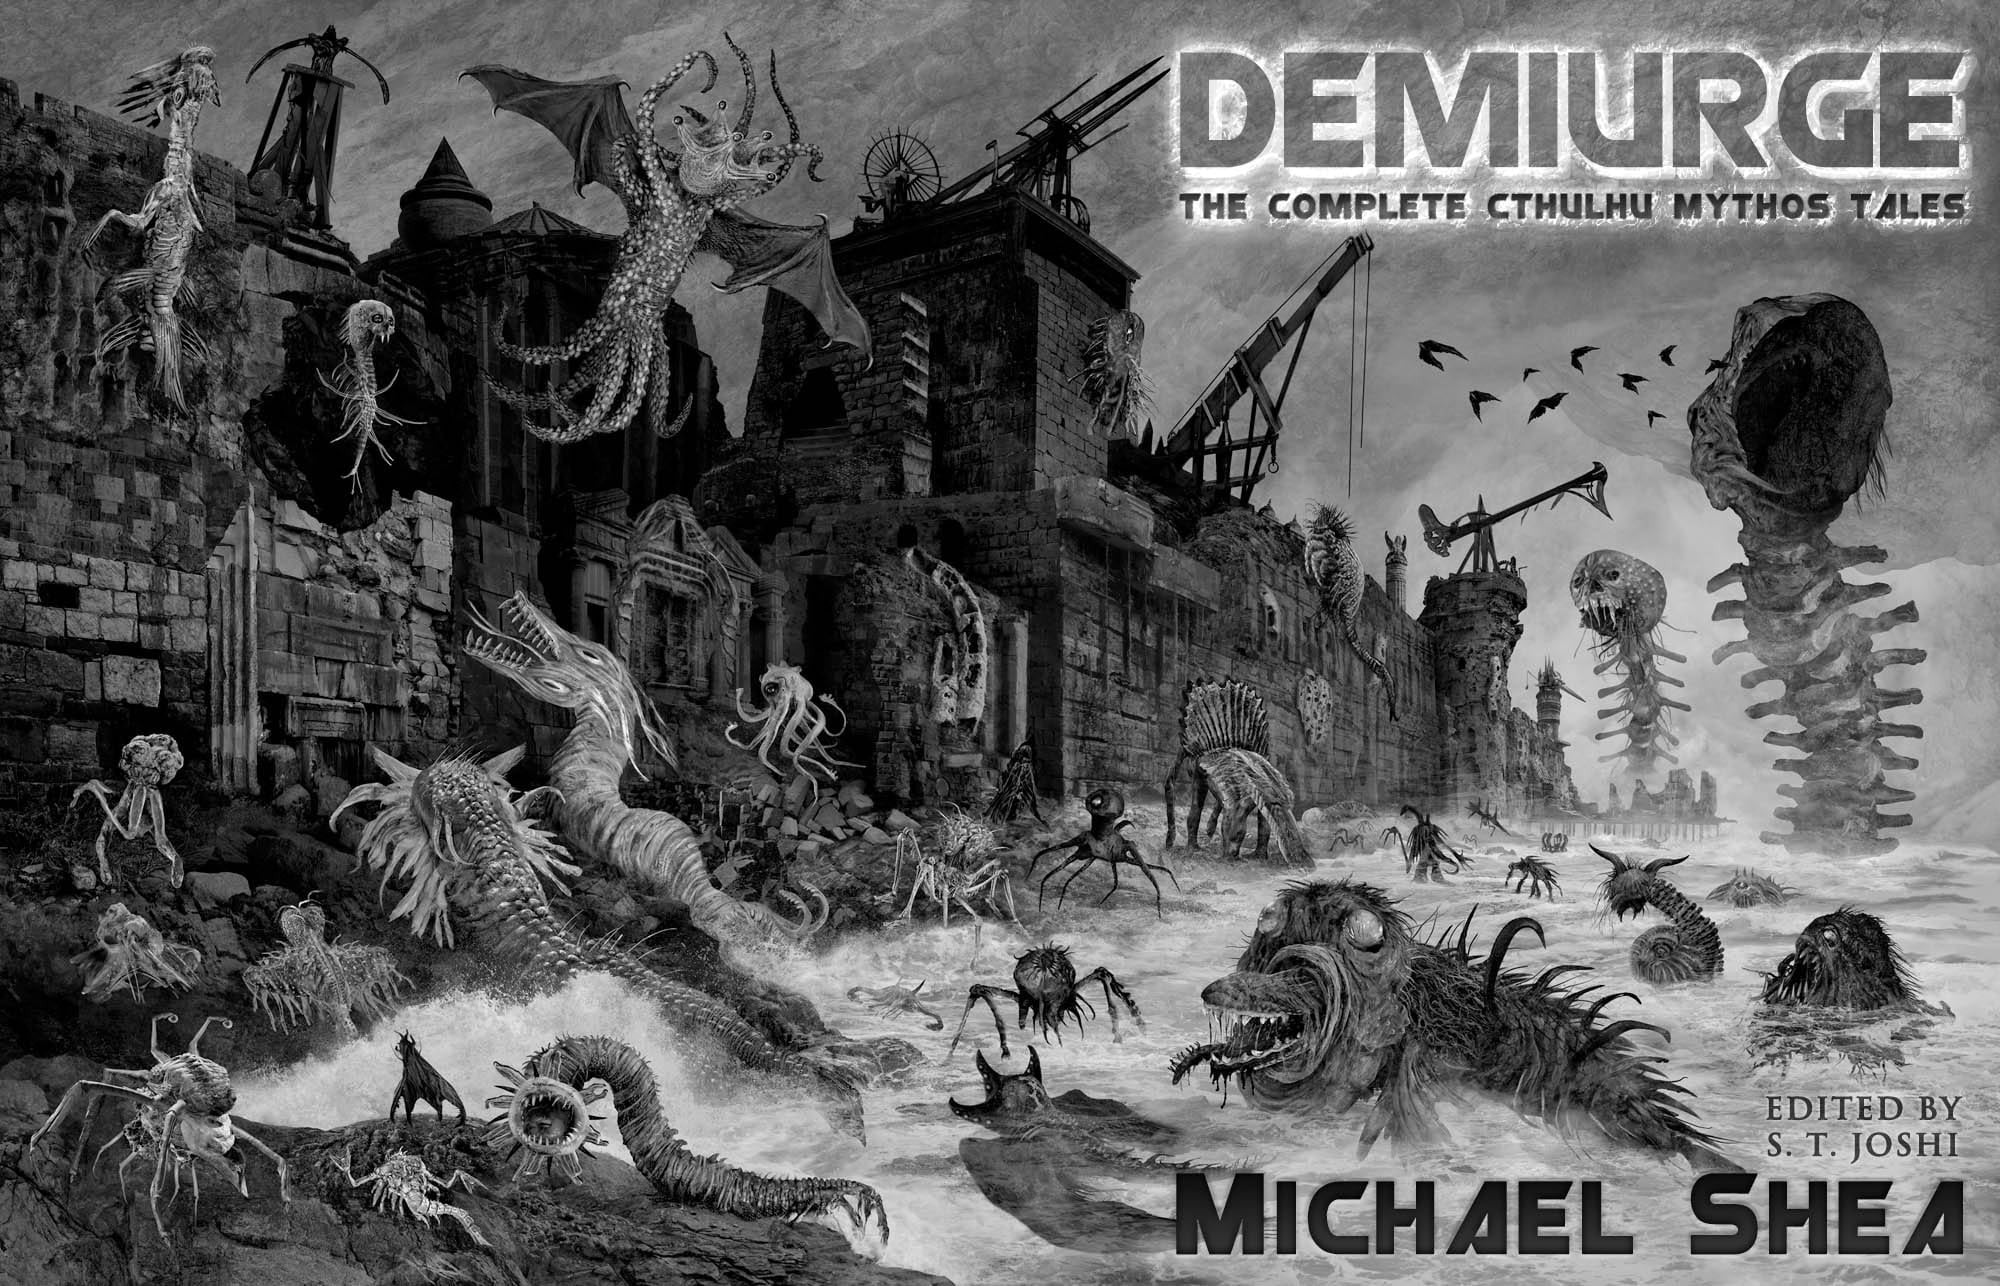 Demiurge: Theplete Cthulhu Mythos Tales Of Michael Shea Edited By S T  Joshi (preorder)